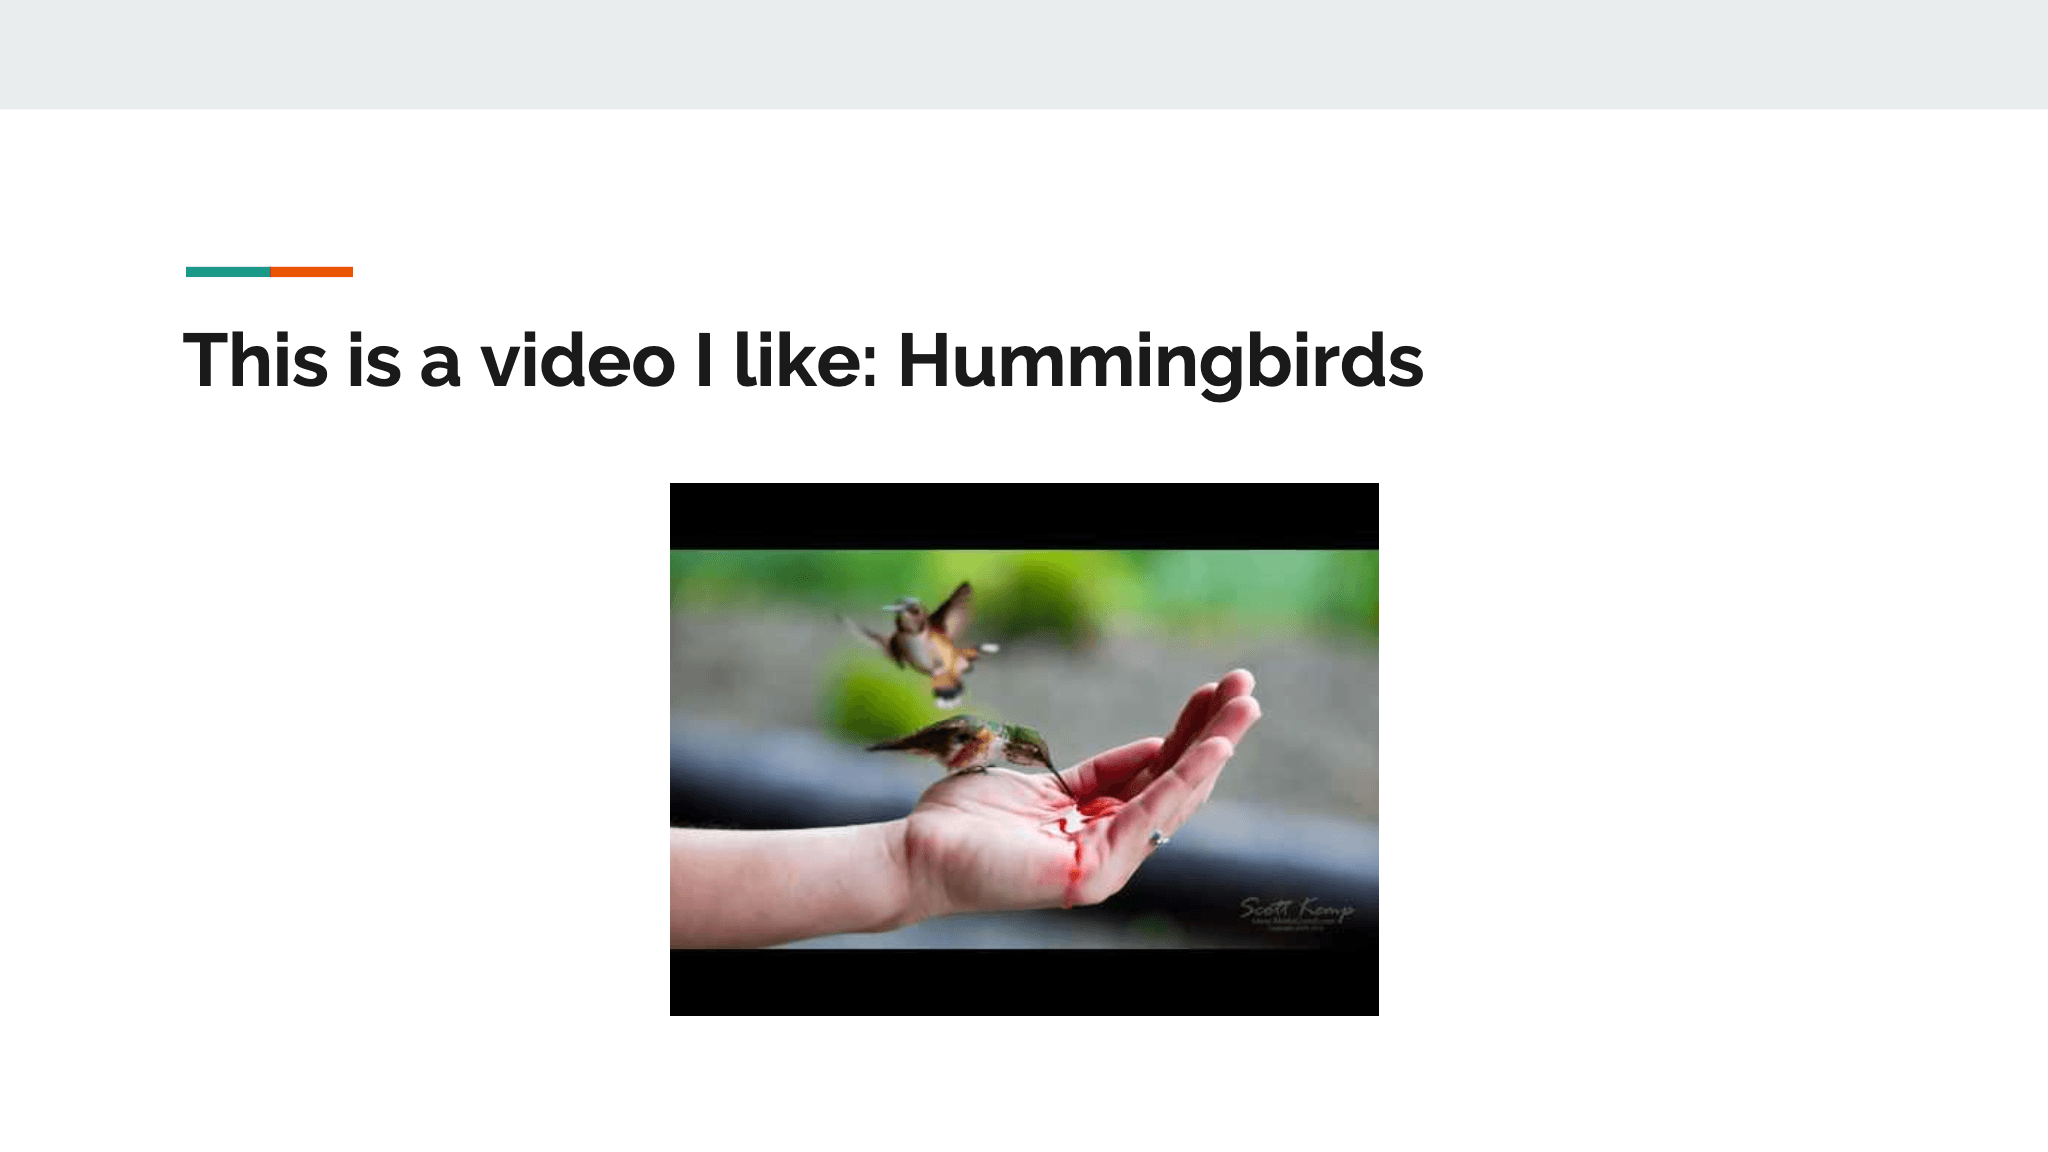 This is a video I like: Hummingbirds